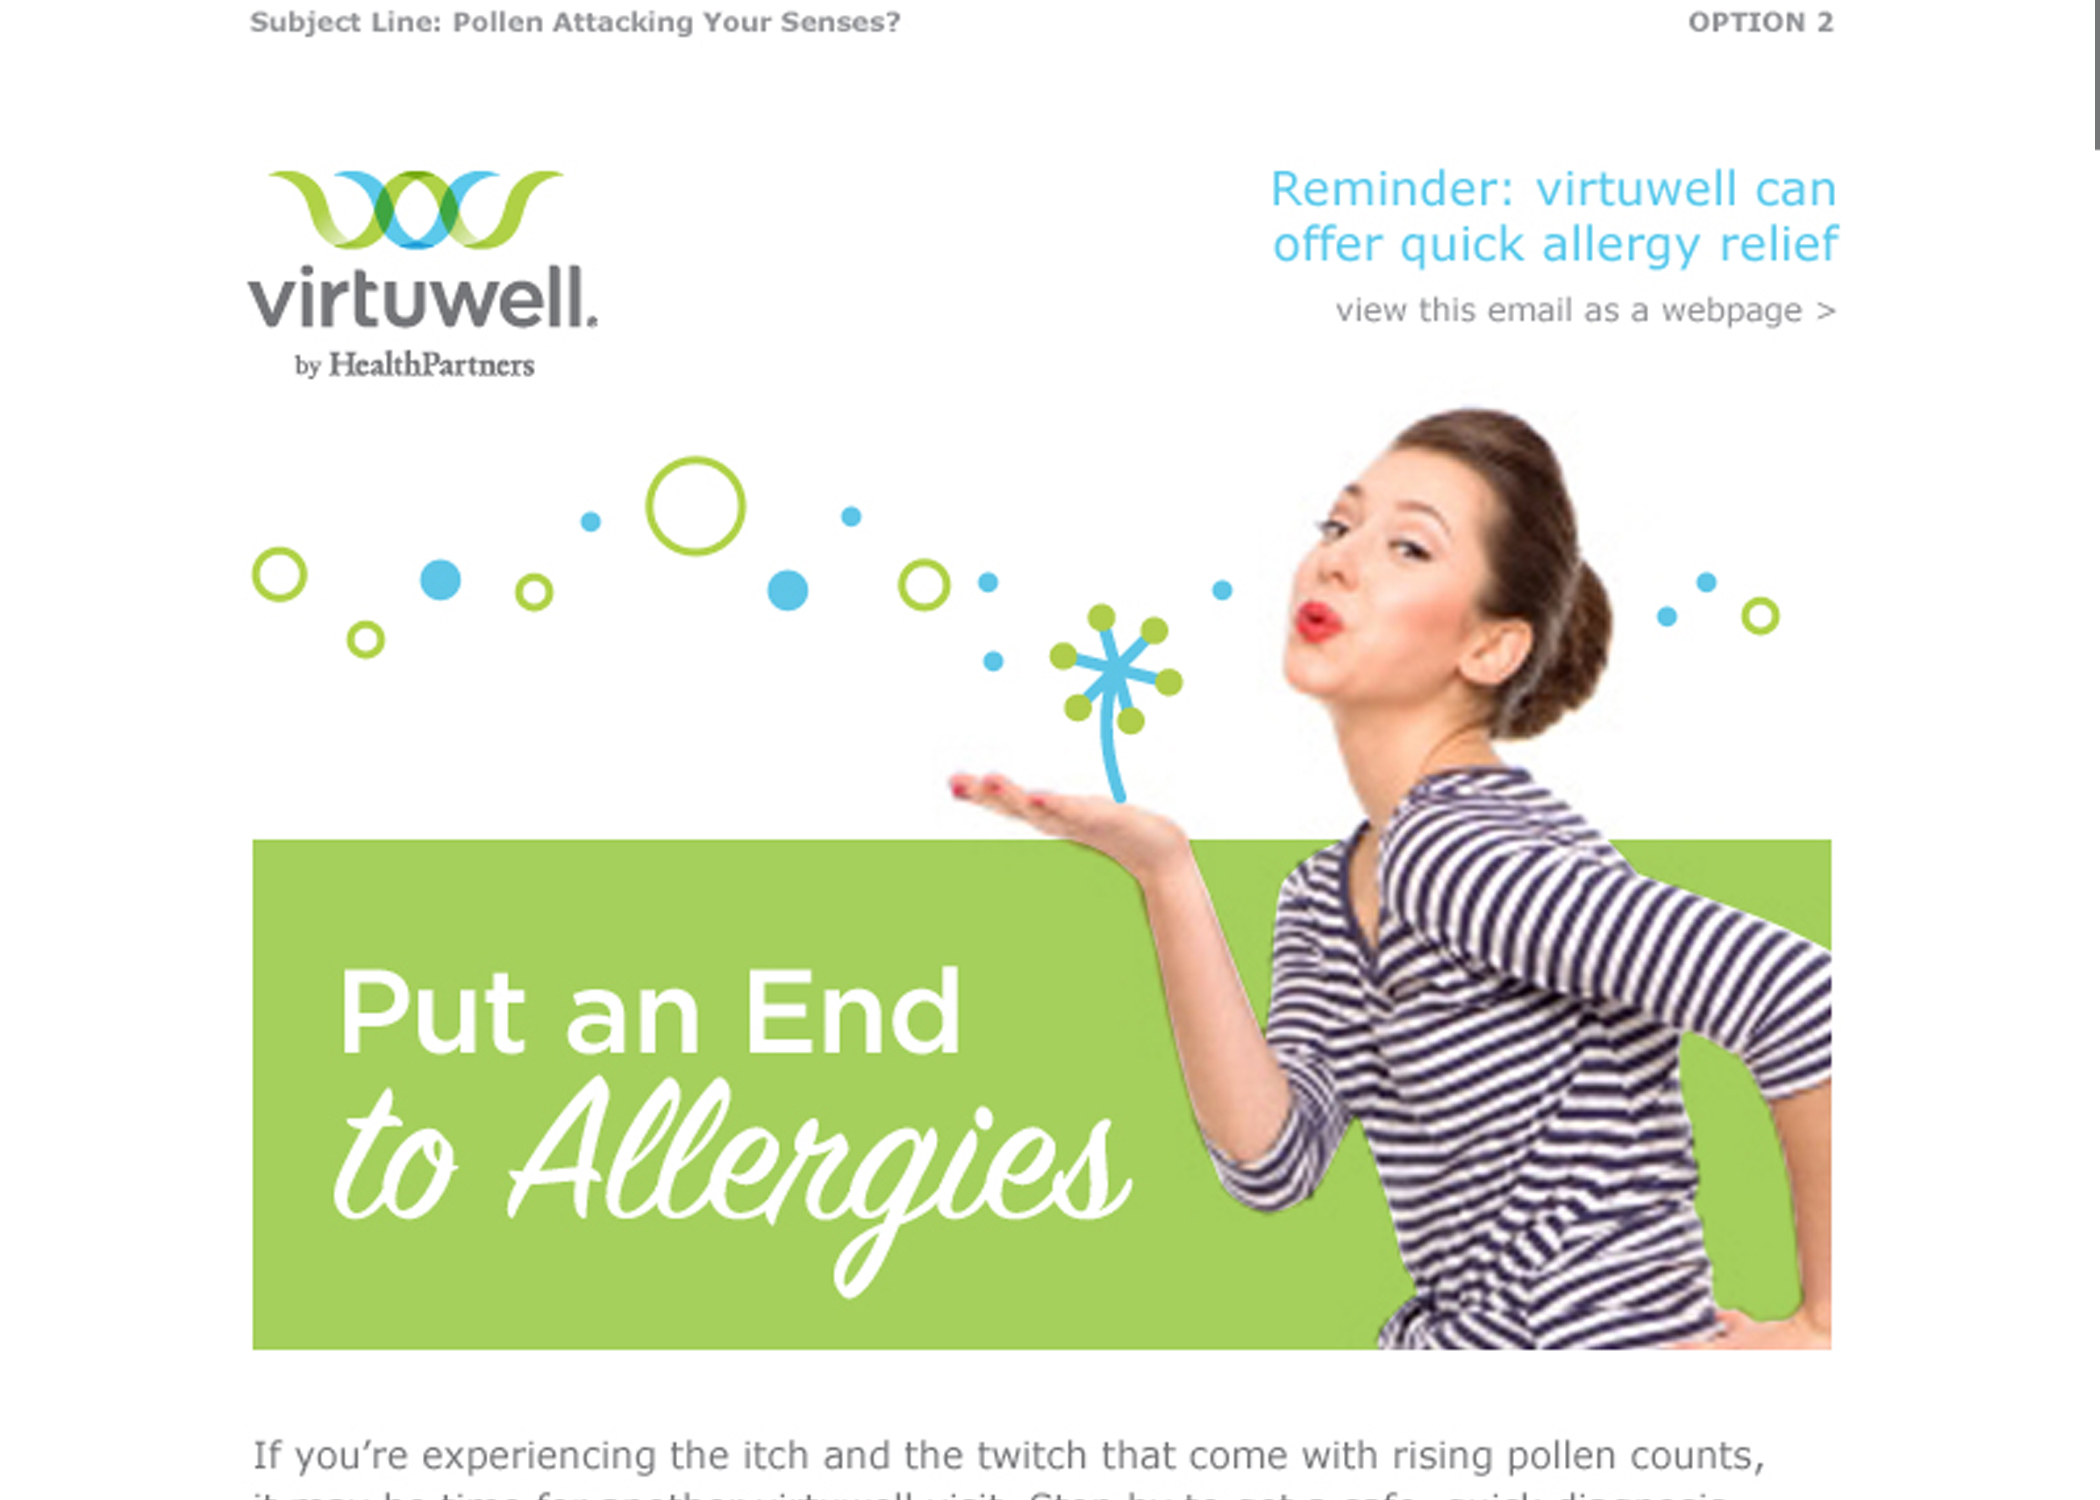 virtuwell - Content Strategy | Email Copywriting